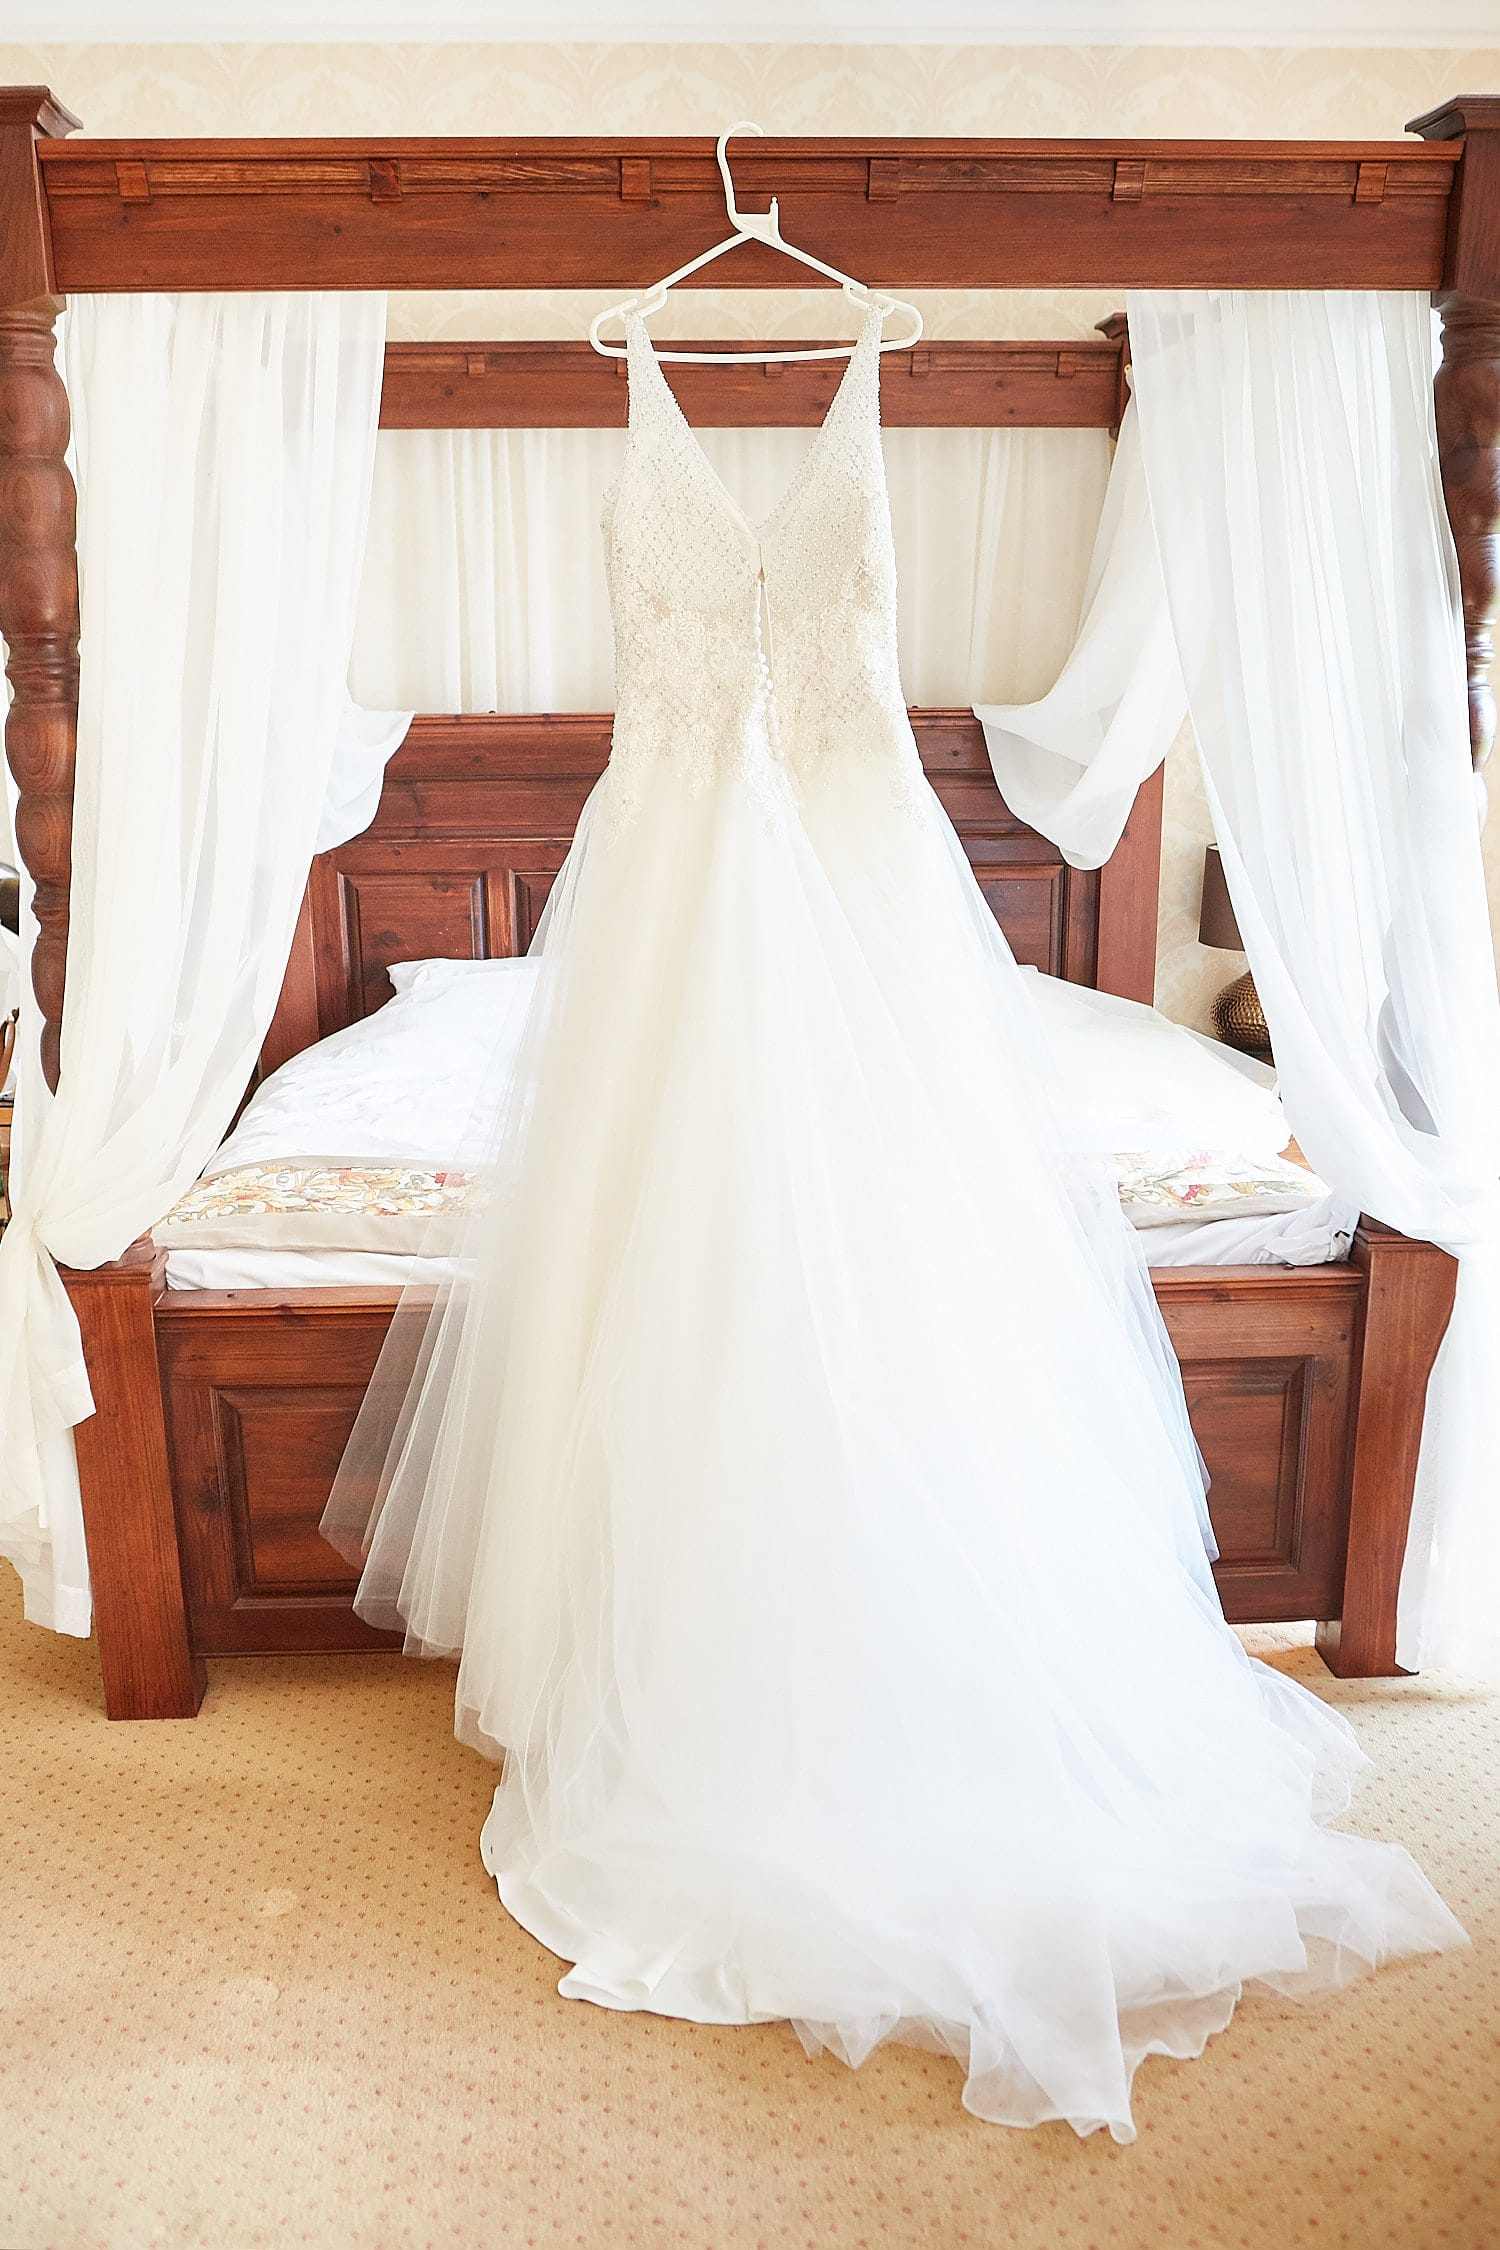 A dress hanging from a four poster bed